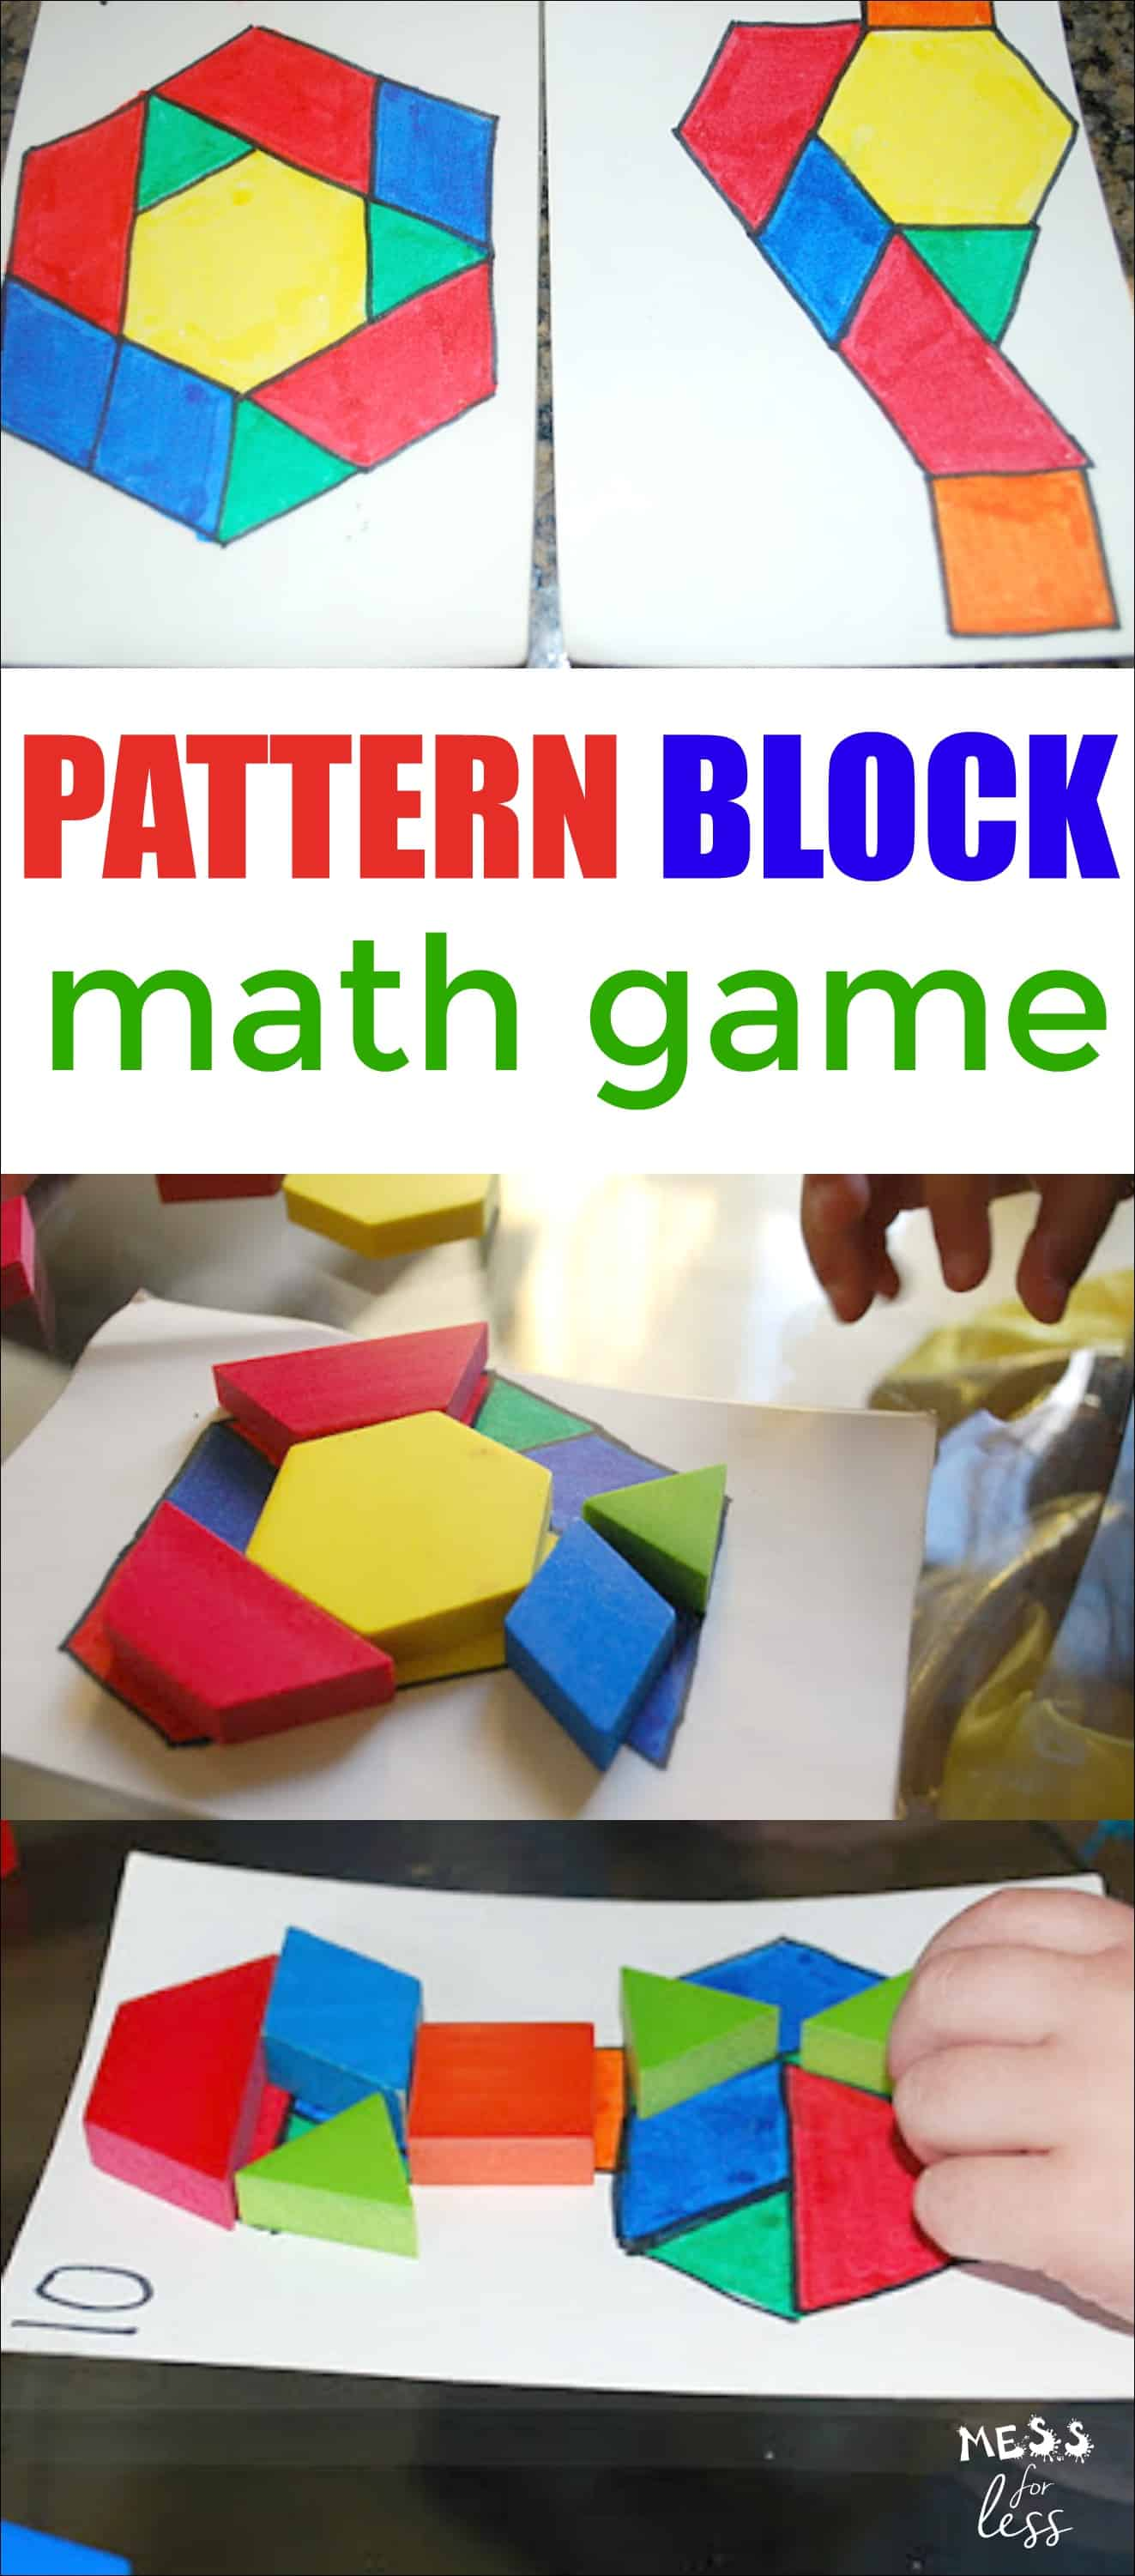 Kids can learn so much with pattern blocks. Find out how you can easily create your own pattern block game that will have kids playing and learning.